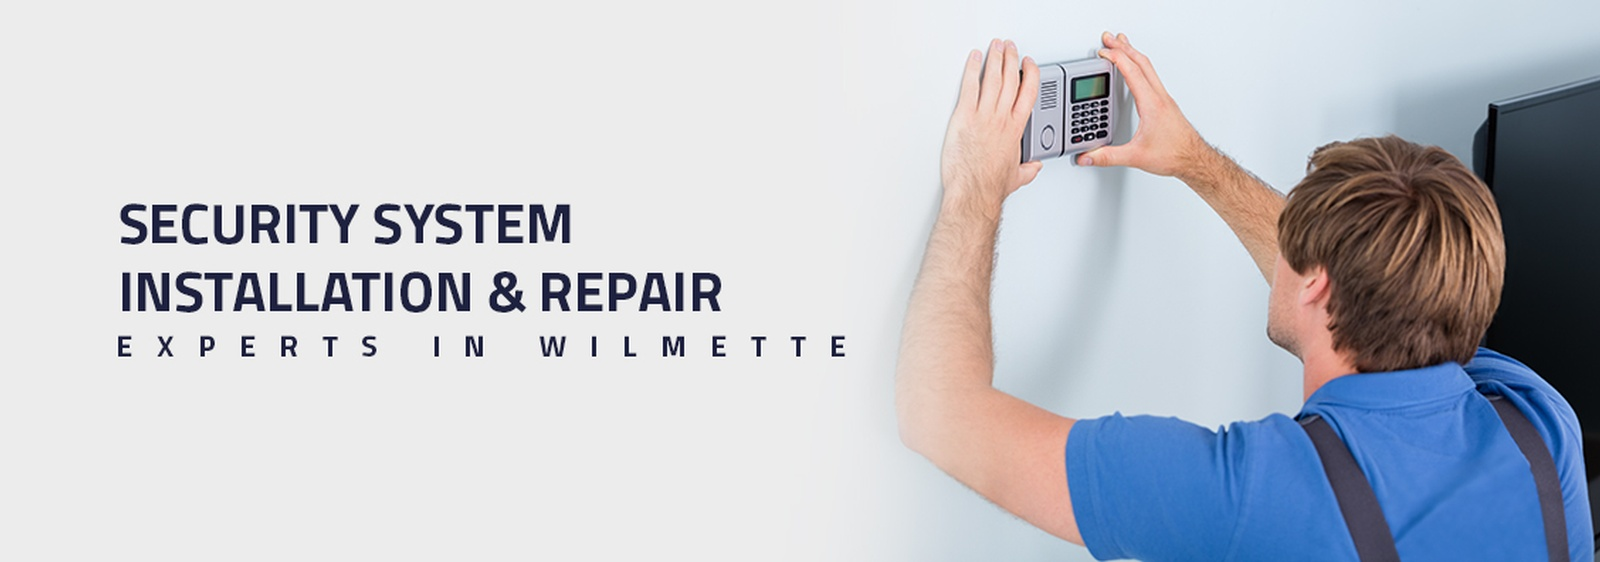 Security System Installation & Repair Experts in Wilmette